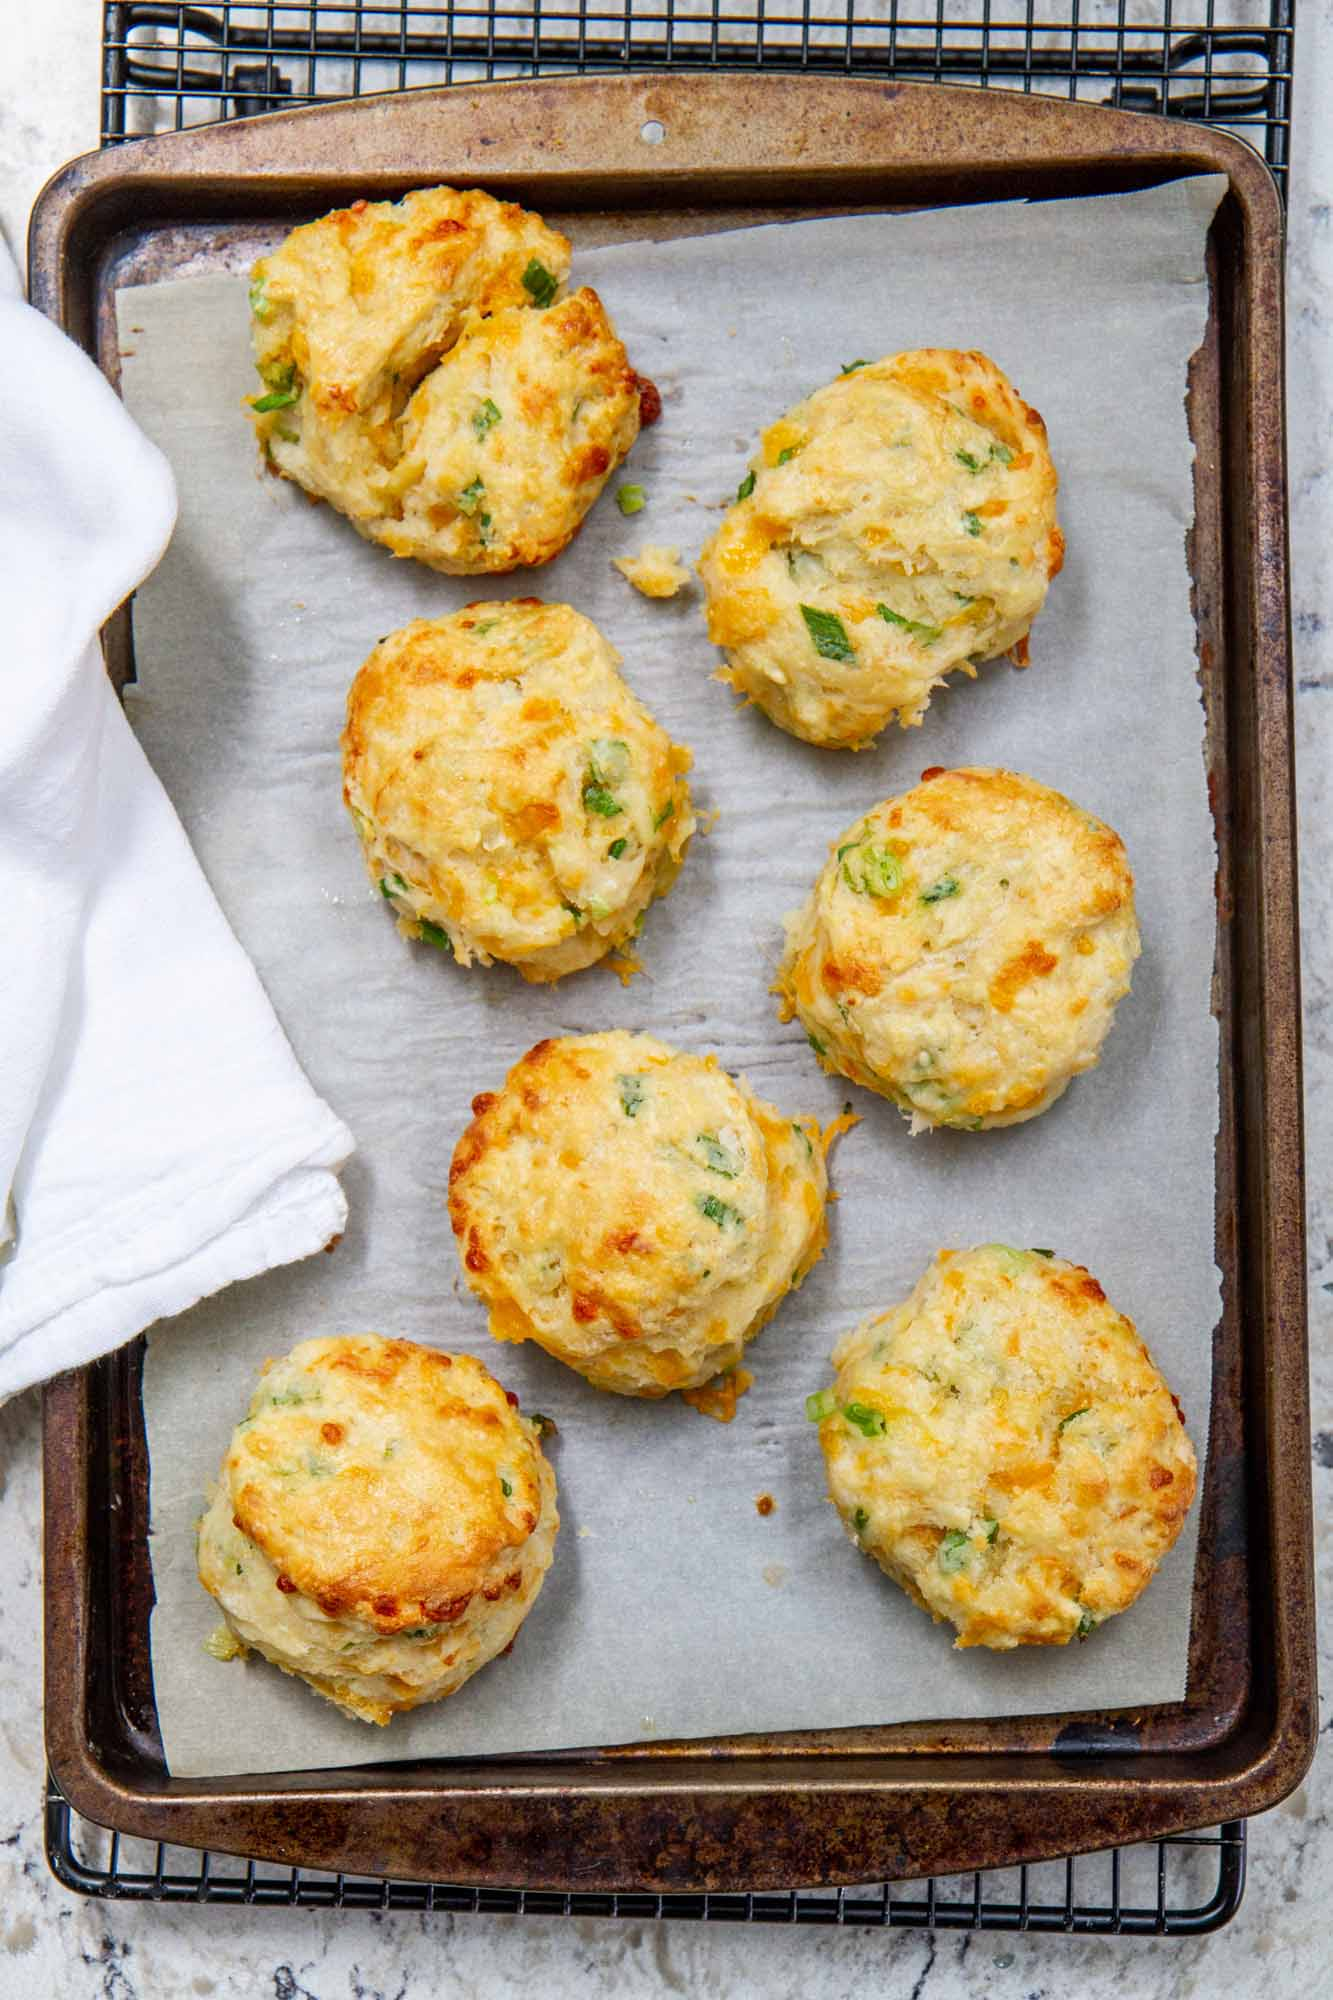 Cheddar-Scallion Biscuits -- Easy homemade biscuits filled with layers of melty cheese and sliced scallions. @girlversusdough #girlversusdough #scallions #cheddar #biscuitrecipe